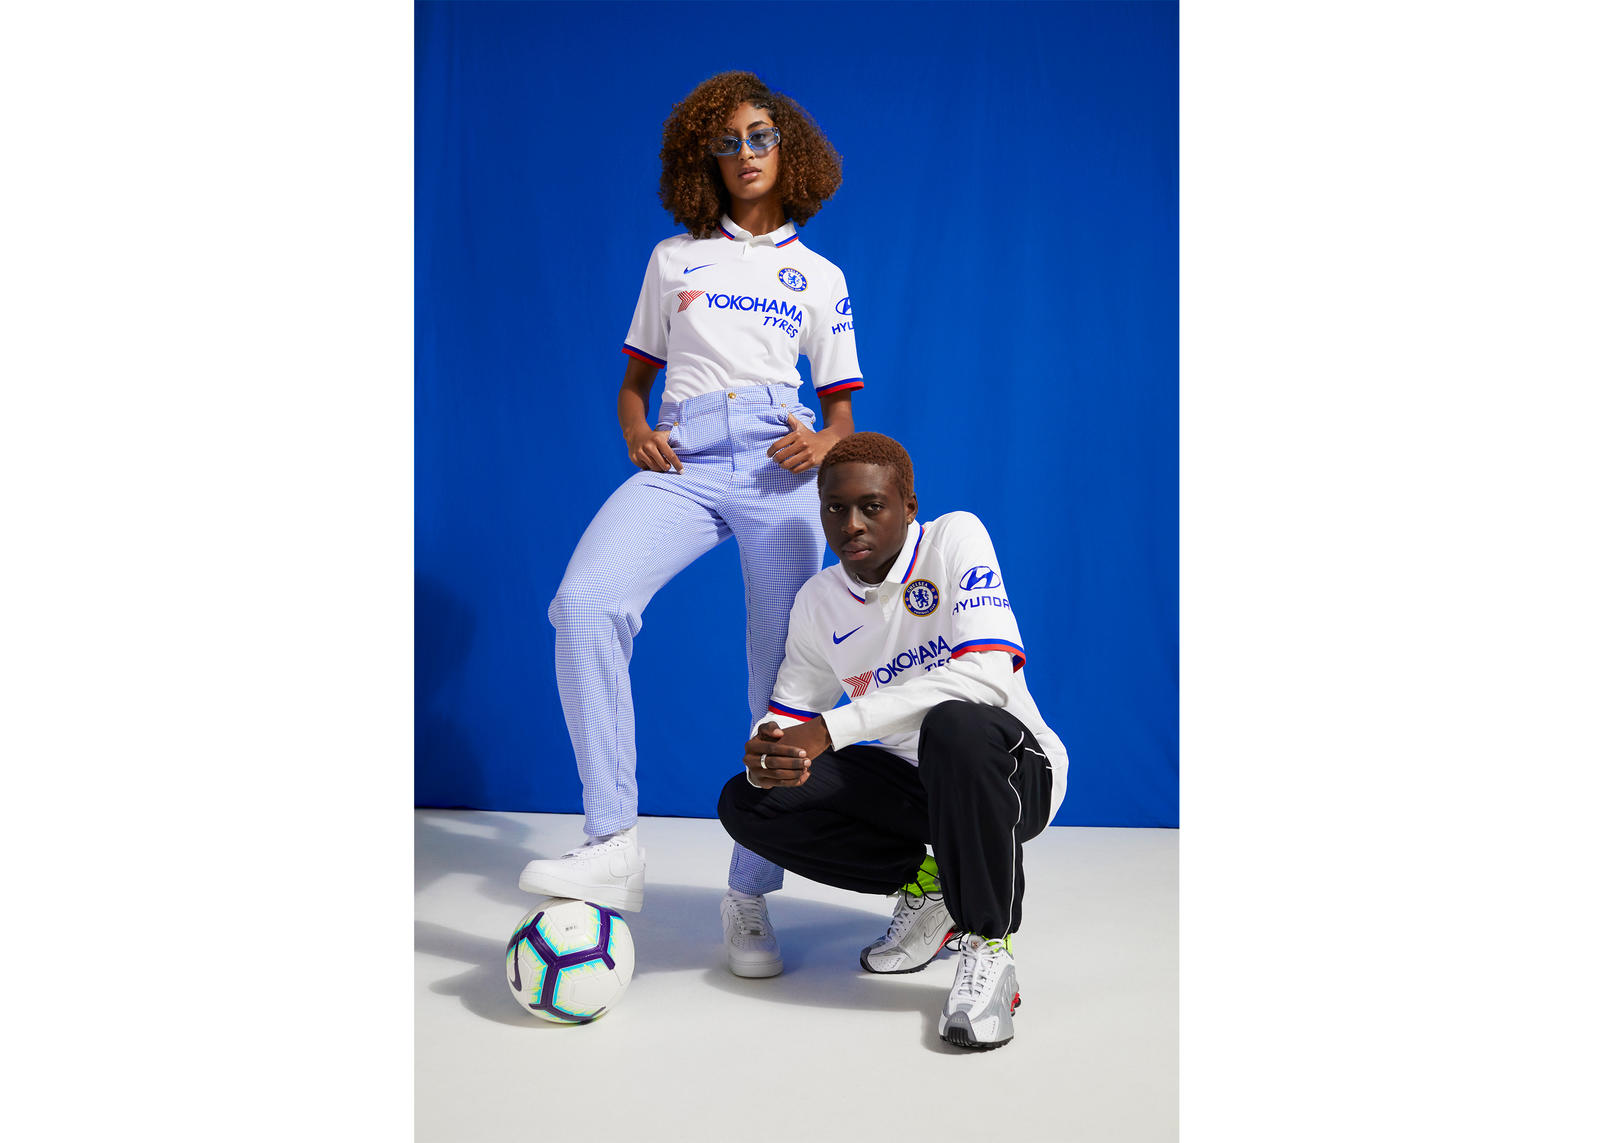 size 40 8f70e 61ed9 Chelsea Away Kit 2019-20 - Nike News